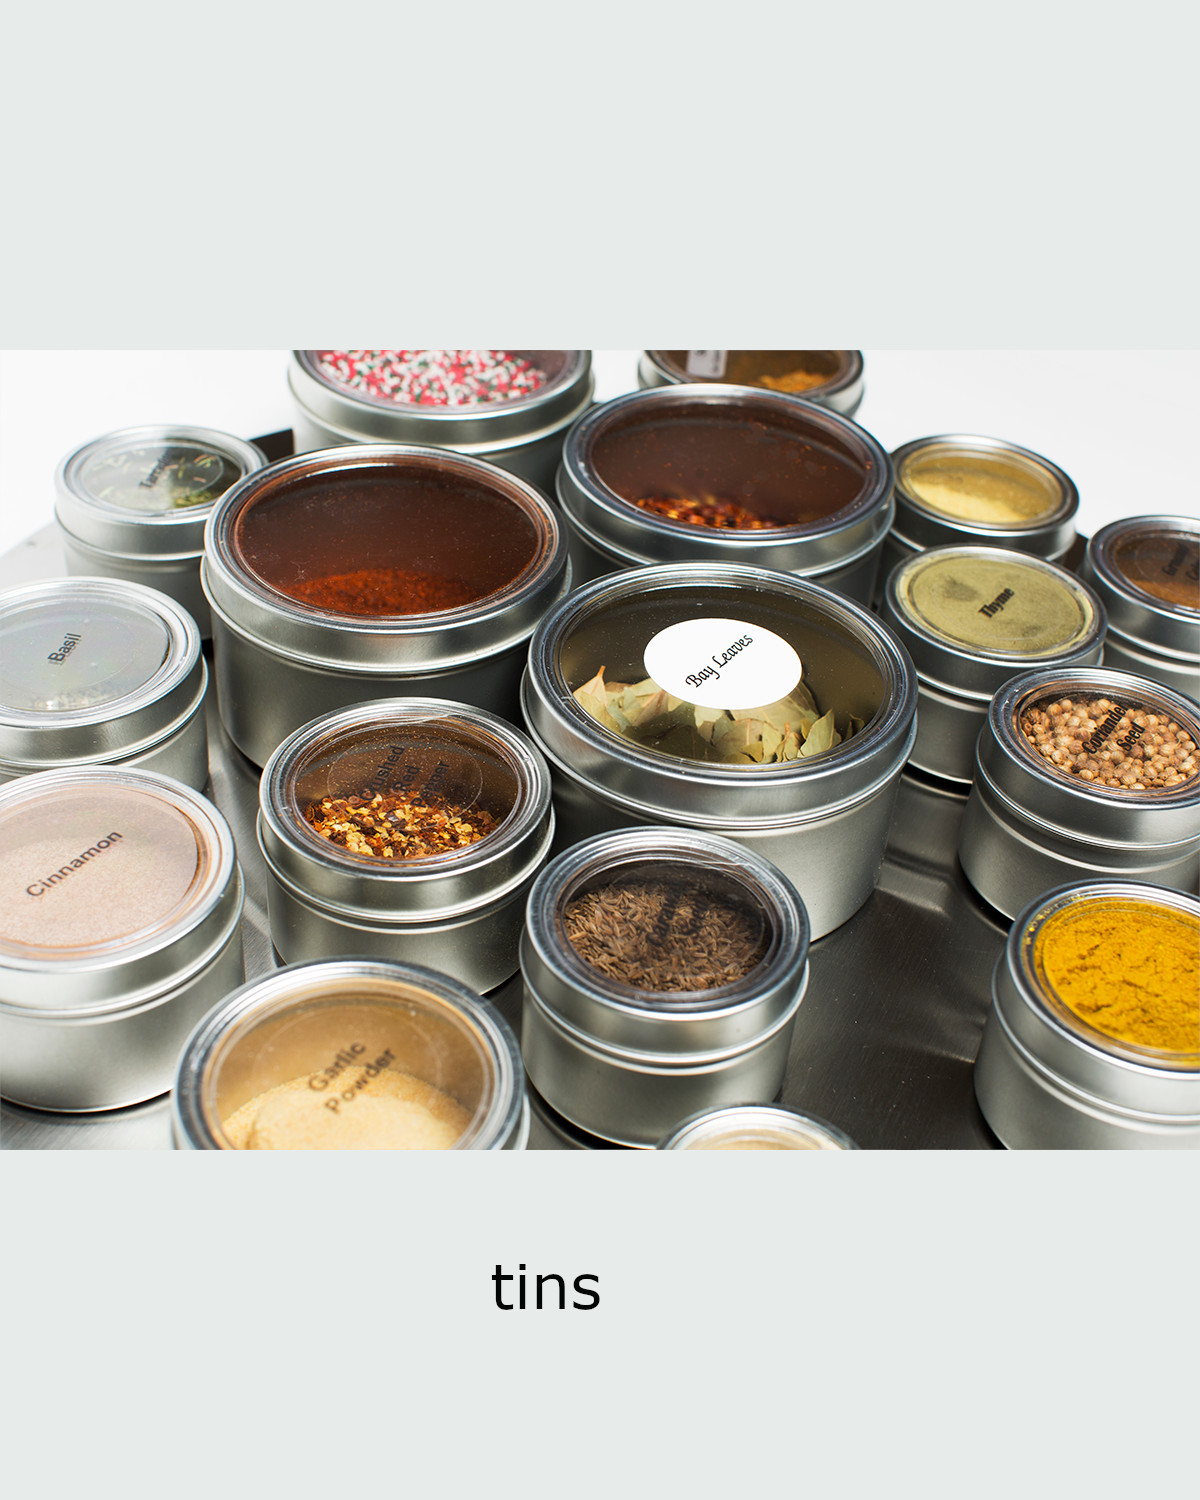 Neutral-Center-TINS3-COLOr.jpg